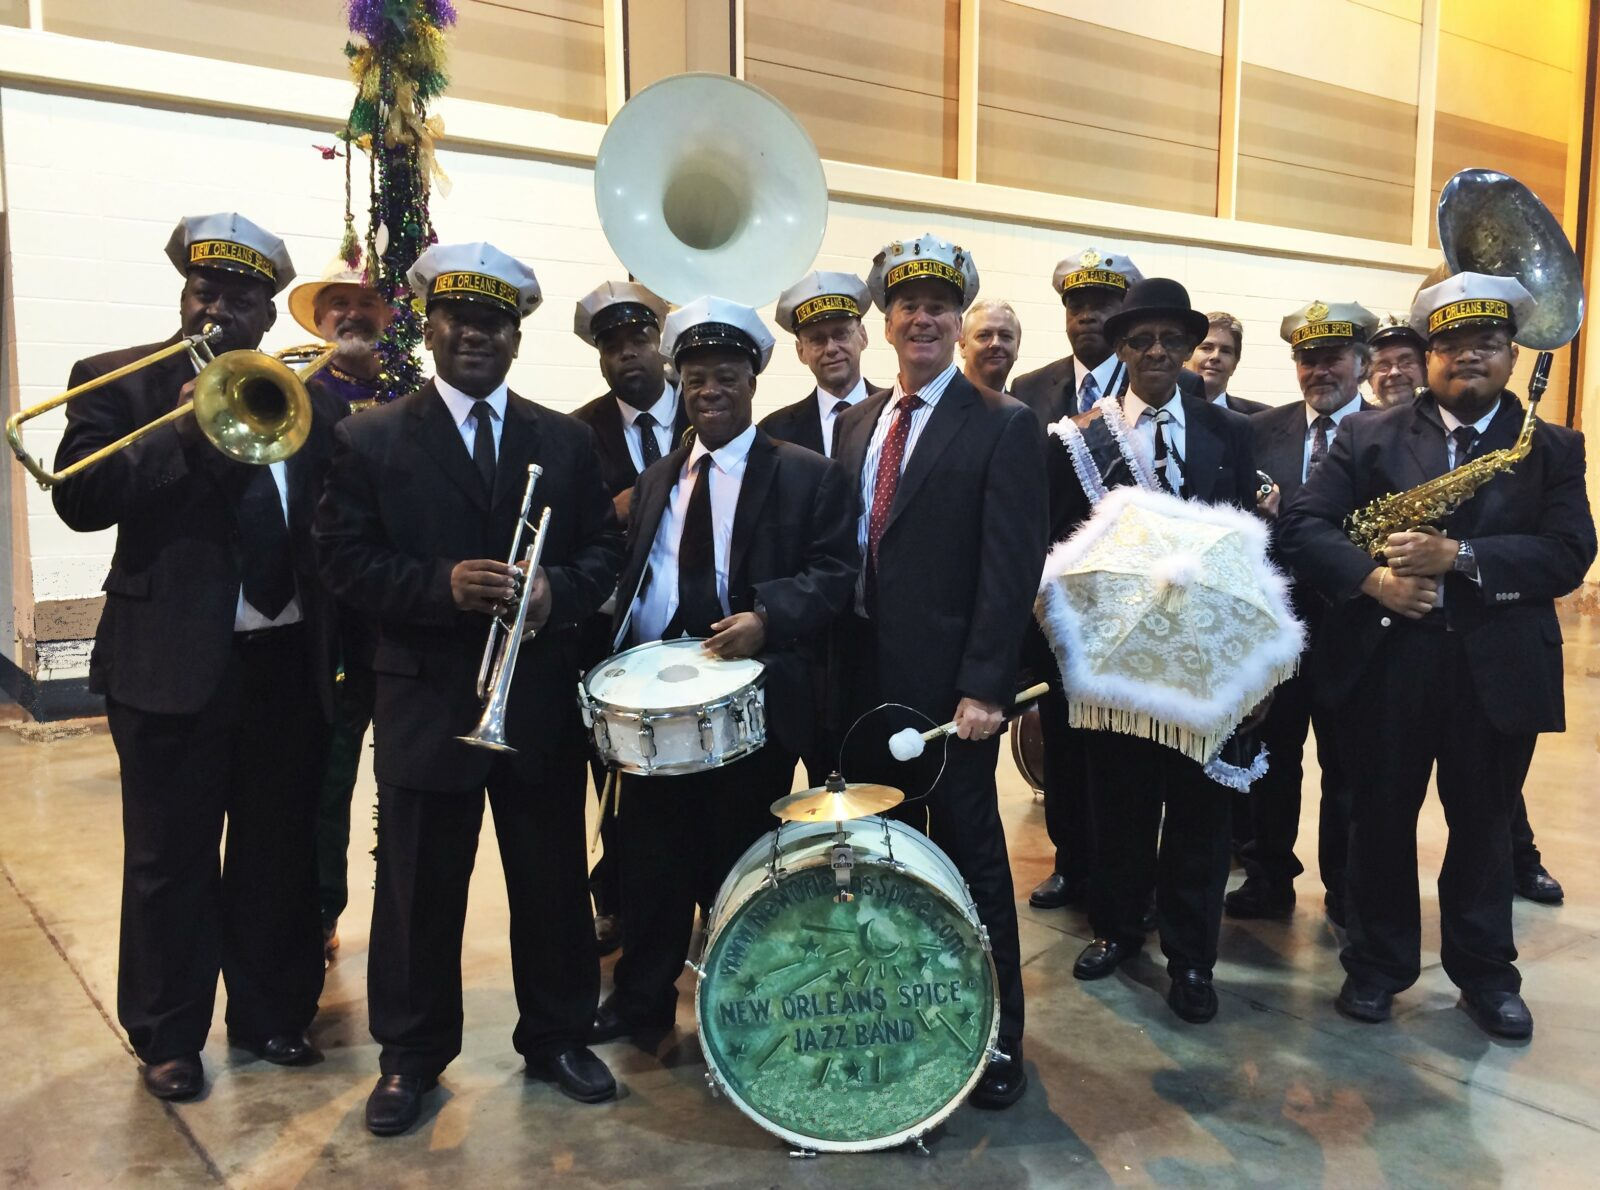 New Orleans Spice® Brass Band 14-piece